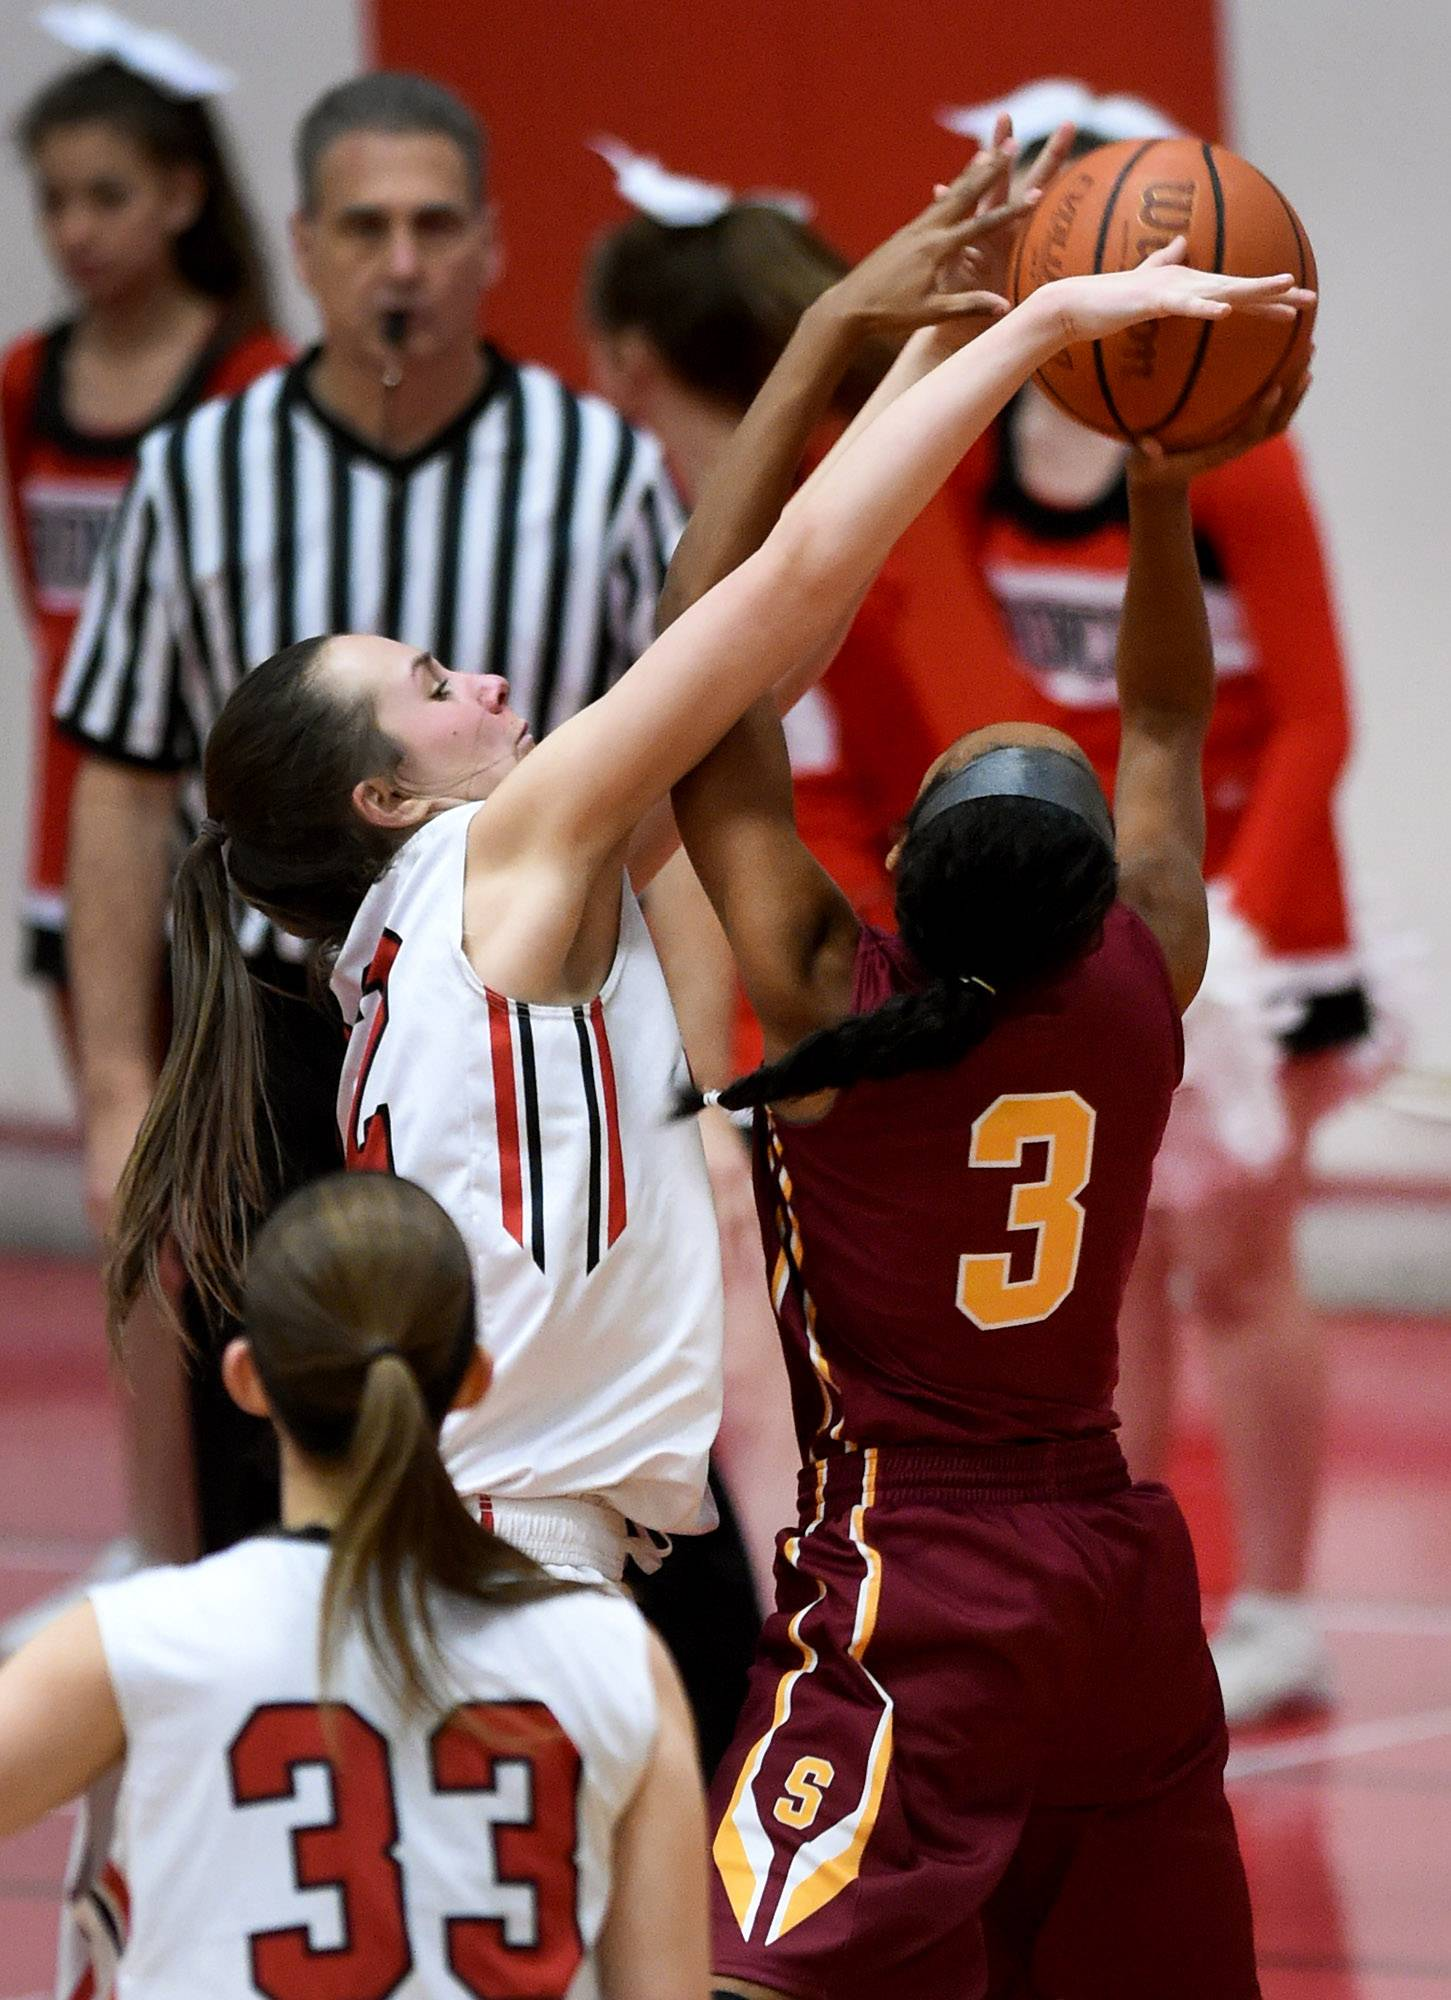 Barrington's Tess Conforti cleanly blocks a shot from Schaumburg's Kayla Patterson on Friday at Barrington.